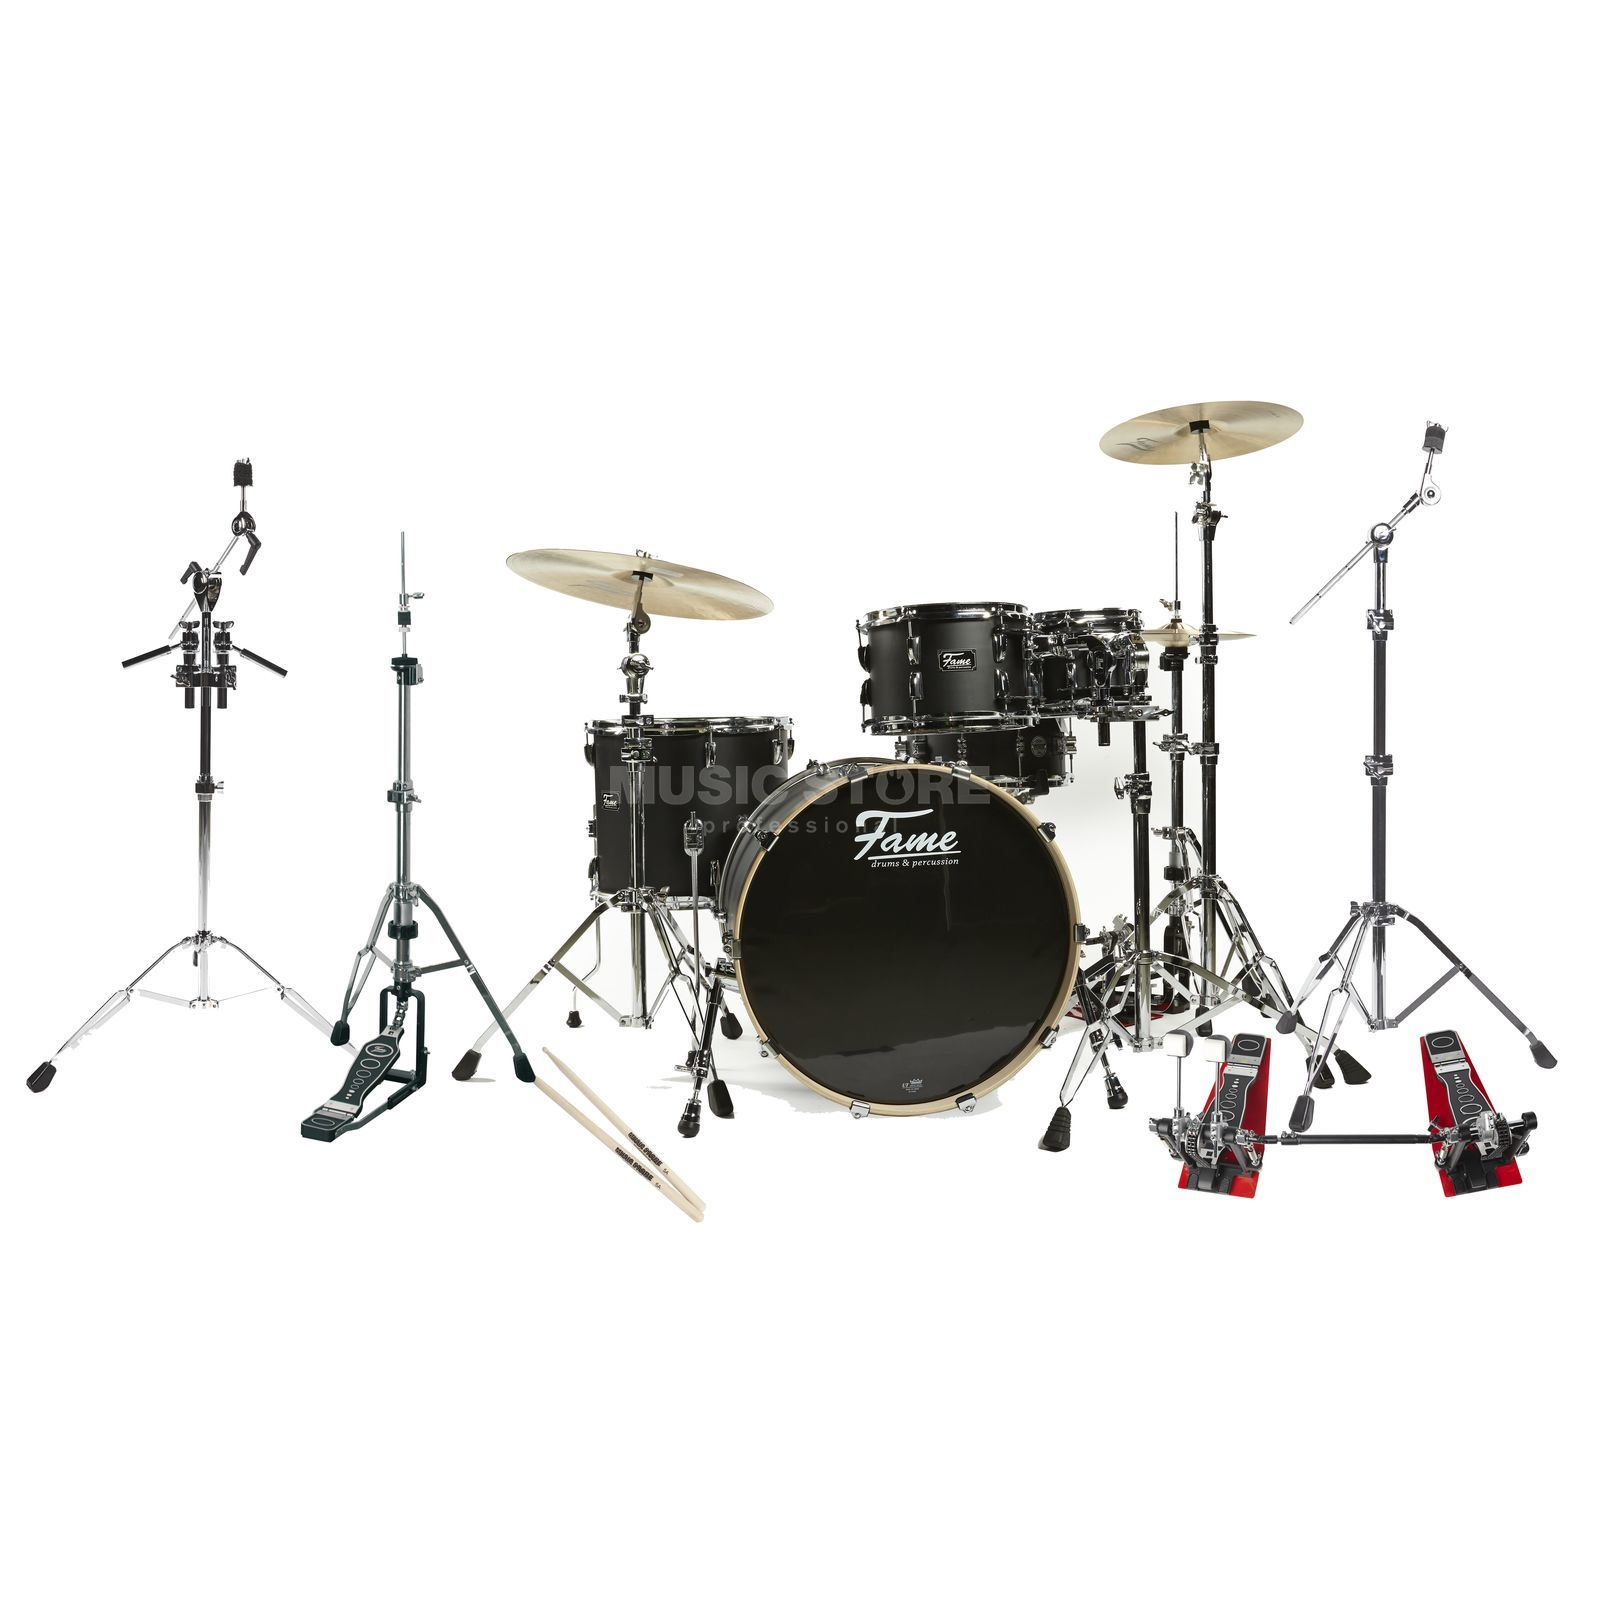 FAME Fire Stage 3 + Hardware - Set Produktbild